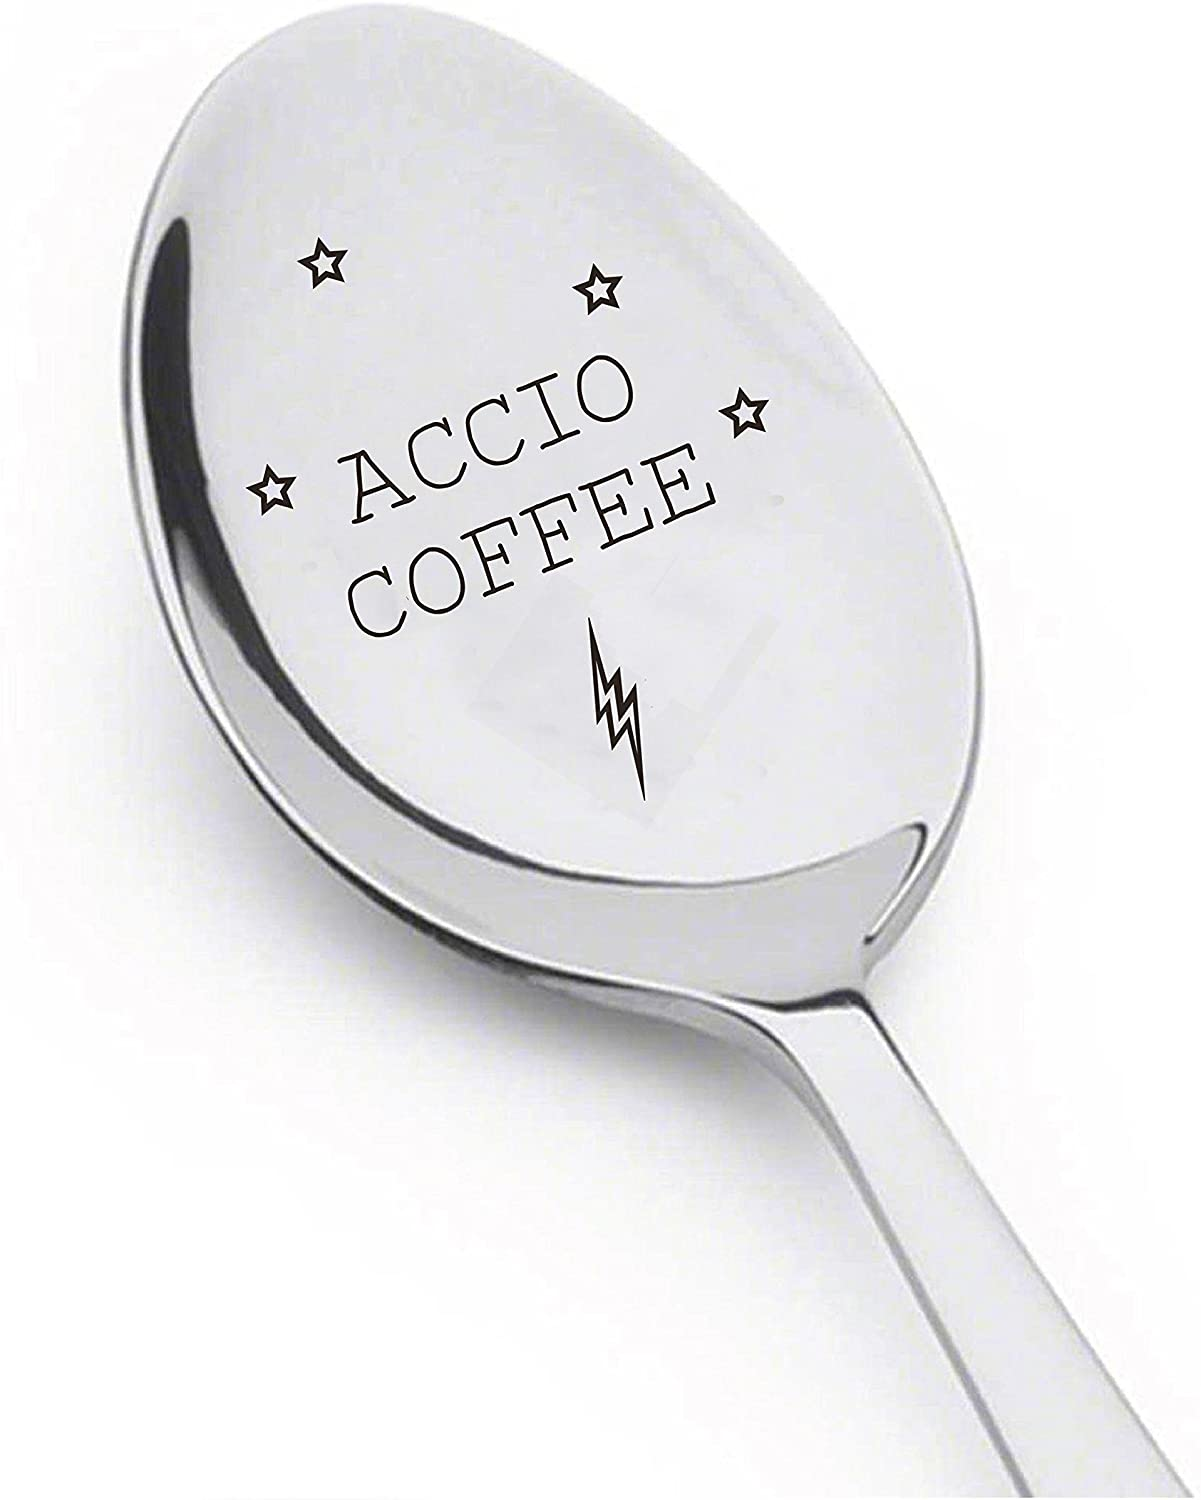 Harry Potter: Accio Coffee Spoon   Harry Potter gift ideas   cool Harry Potter gift ideas   magical Harry Potter gift ideas   cute Harry Potter gift ideas   what to gift a harry potter fan   what is the best gift for a harry potter fan   the ultimate harry potter gift   the best harry potter gift ideas   harry potter gift for girl   harry potter gift for teacher   harry potter gift for kids   harry potter gift to buy   harry potter gift for adults   harry potter gift for him   harry potter gift for her   harry potter gift for boyfriend   harry potter gift for girlfriend   harry potter gift amazon   harry potter anniversary gift   harry potter gift bag ideas   harry potter gift box ideas   harry potter gift guide   harry potter official gift shop   harry potter gift set   Harry Potter gift guide   the best harry potter gift ideas   what to get someone who loves harry potter   harry potter hufflepuff gift ideas   harry potter Gryffindor gift ideas   harry potter Ravenclaw gift ideas   harry potter Slytherin gift ideas   harry potter graduation gift ideas   good harry potter gift ideas   great harry potter gift ideas   harry potter baby shower gift ideas   harry potter themed wedding gift ideas   unique harry potter gift ideas   harry potter valentines gift ideas   potterhead gift ideas   best potterhead gifts   cool potterhead gift ideas   Harry Potter gifts for men   Harry Potter gift box   Harry Potter gifts uk   harry potter gifts for tweens   harry potter gift basket   harry potter gift set   Harry Potter stocking stuffers   Harry Potter Christmas gifts